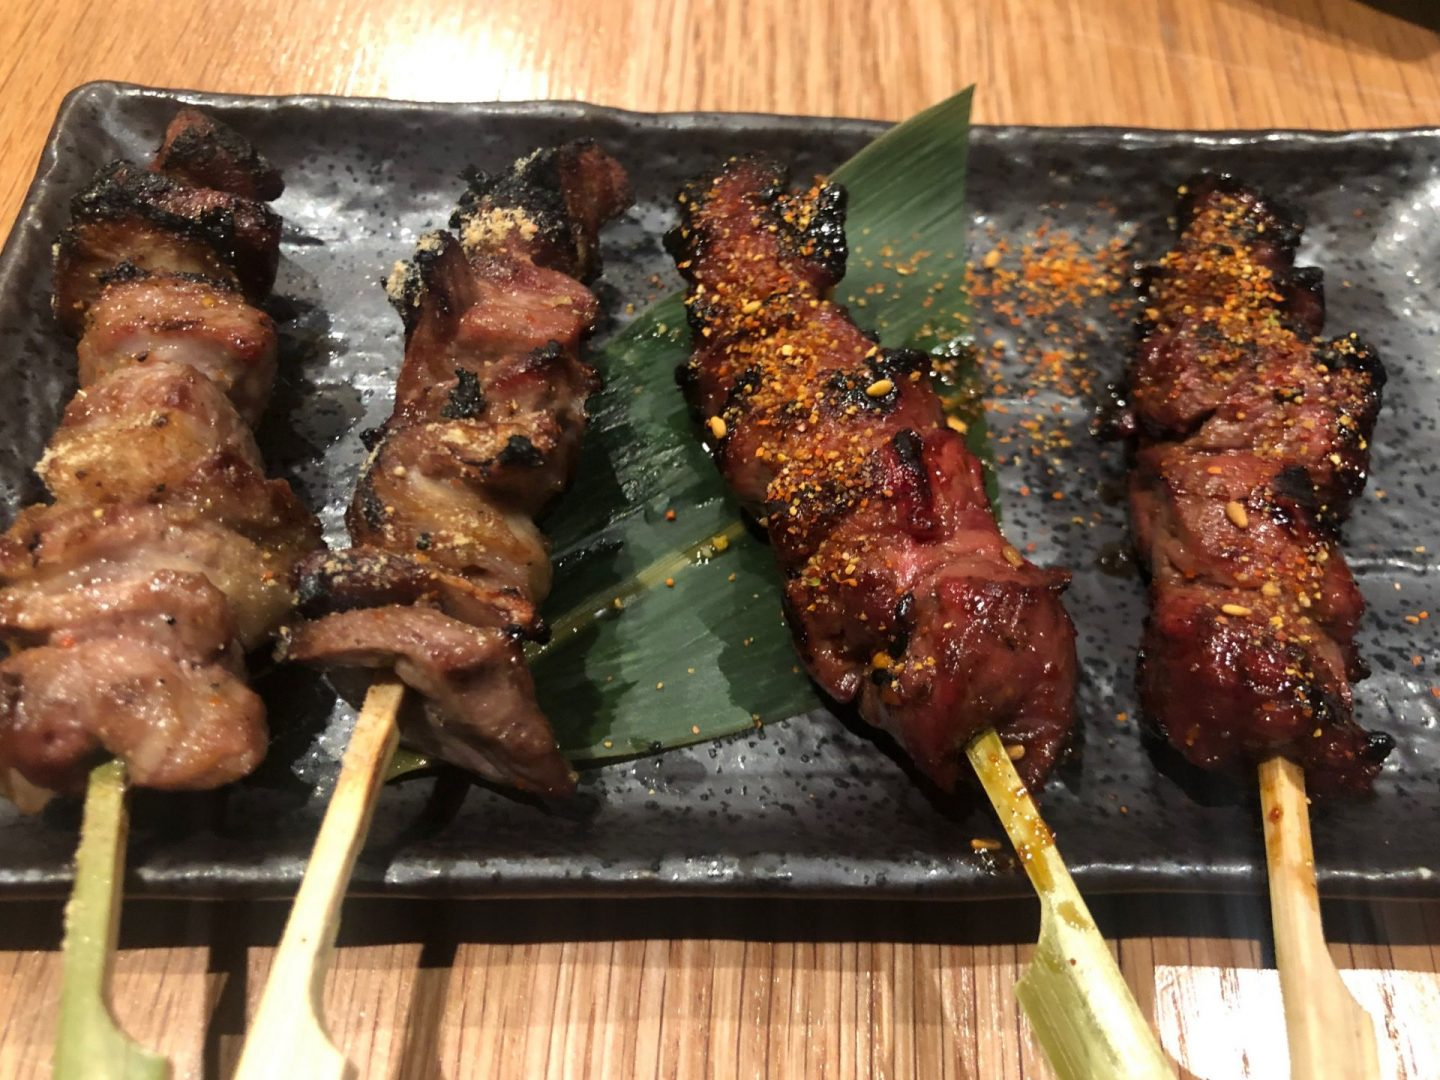 Charcoal fireside cooking at Soho's Robata restaurant